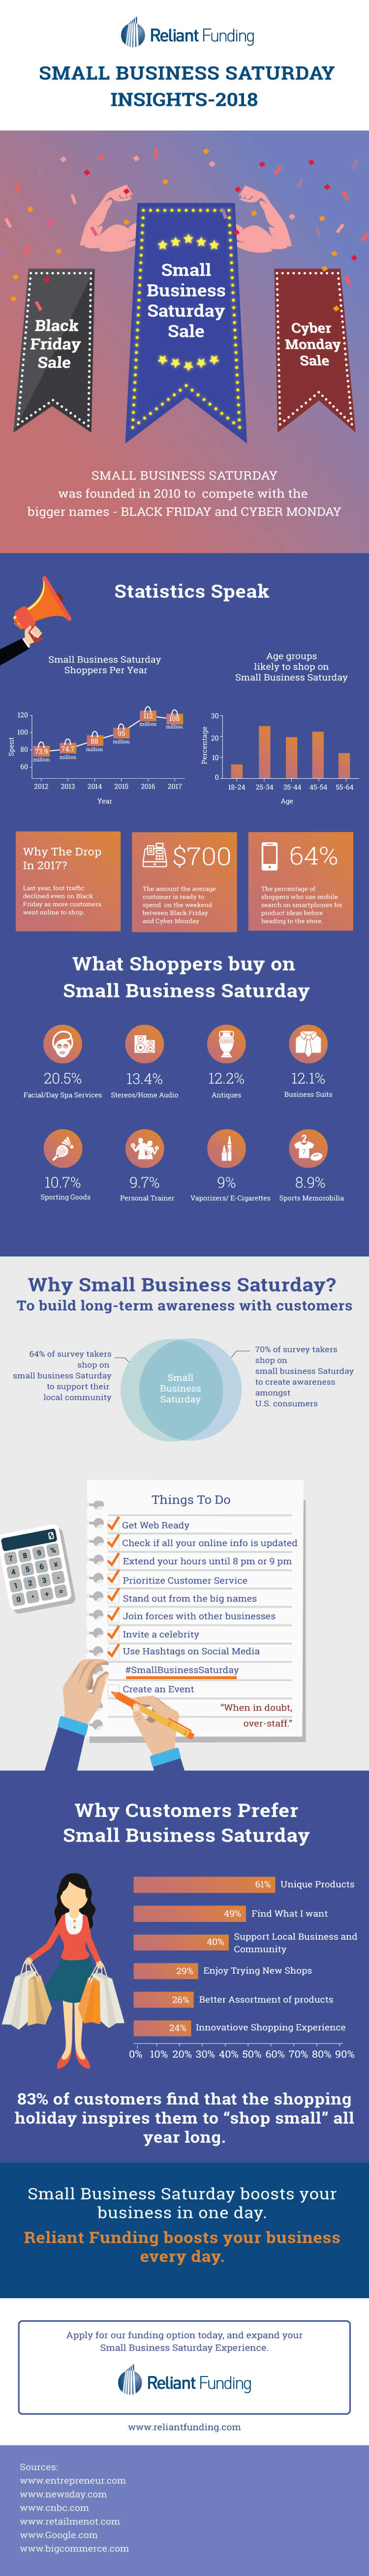 small business loans and Funding